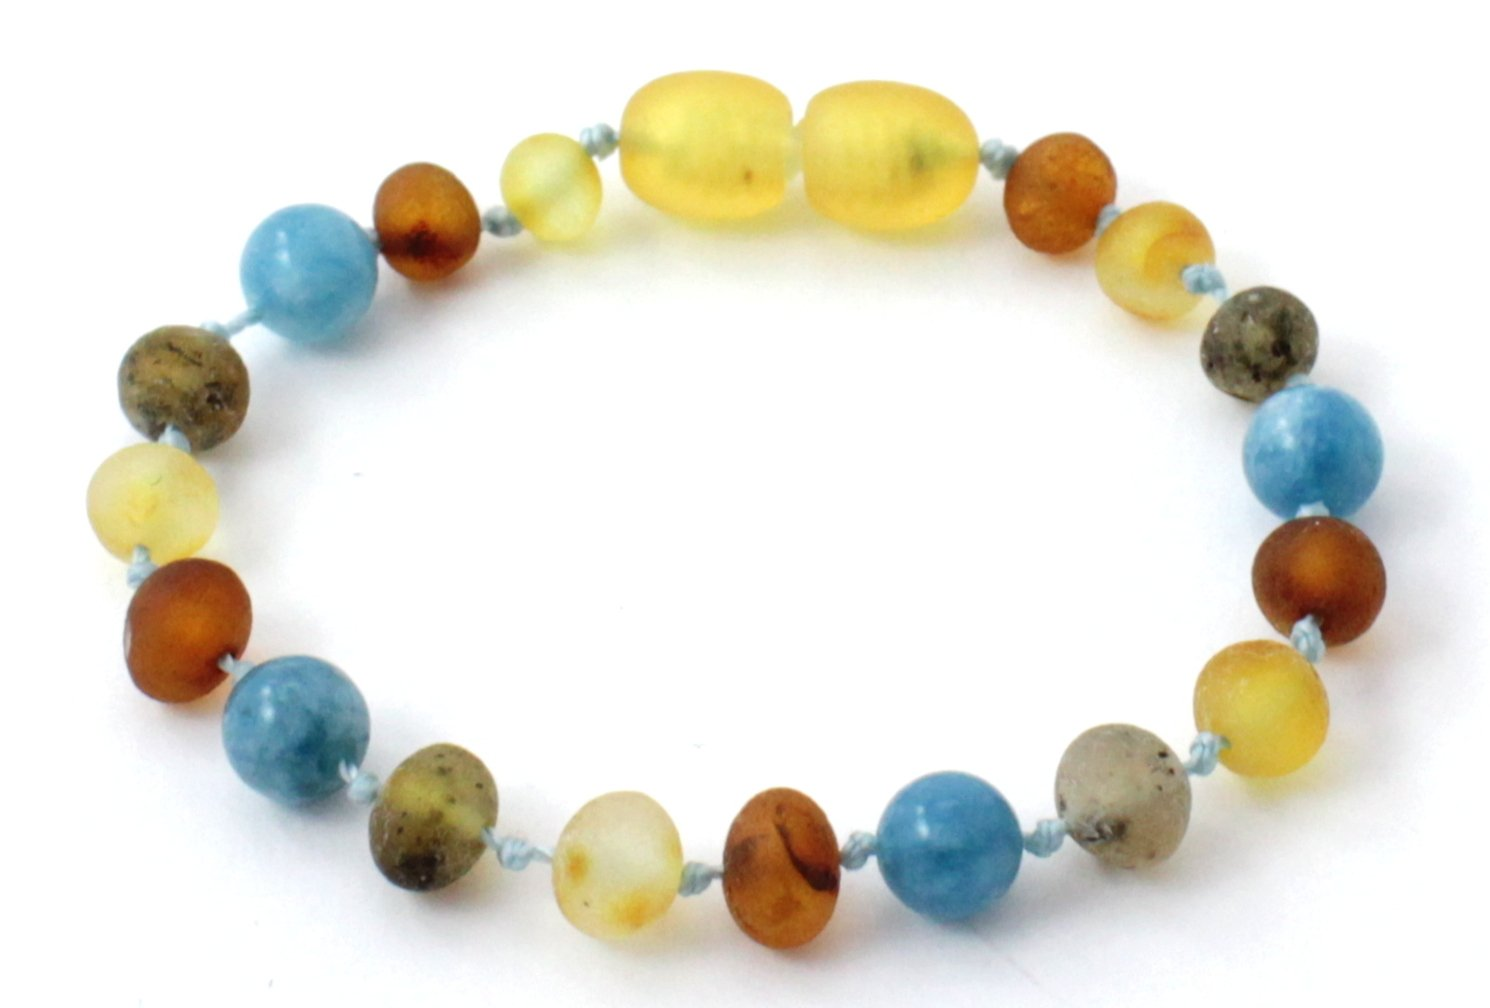 Raw Baltic Amber Teething Bracelet / Anklet made with Aquamarine Beads - Size 5.5 inches (14 cm) - Raw Multicolor Amber Beads - BoutiqueAmber (5.5 inches, Raw Multi / Aquamarine)